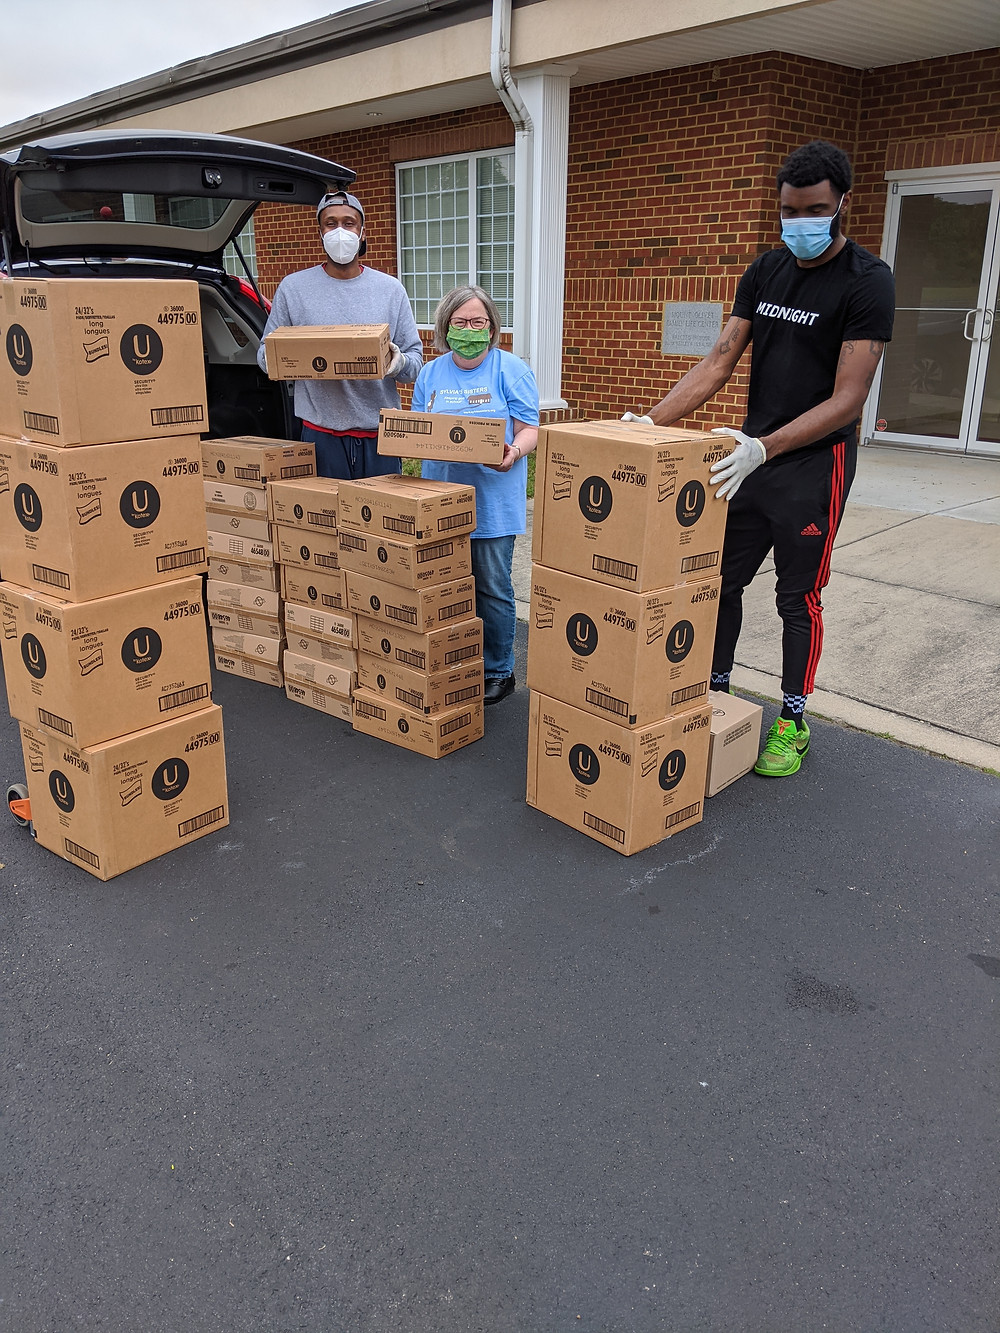 This photo shows two men receiving donation of feminine sanitary products from a female names Jennifer Taylor. They are standing in front of a vehicle parked in front of a brick building. There are large stacks of cardboard boxes displaying the Kotex logo.